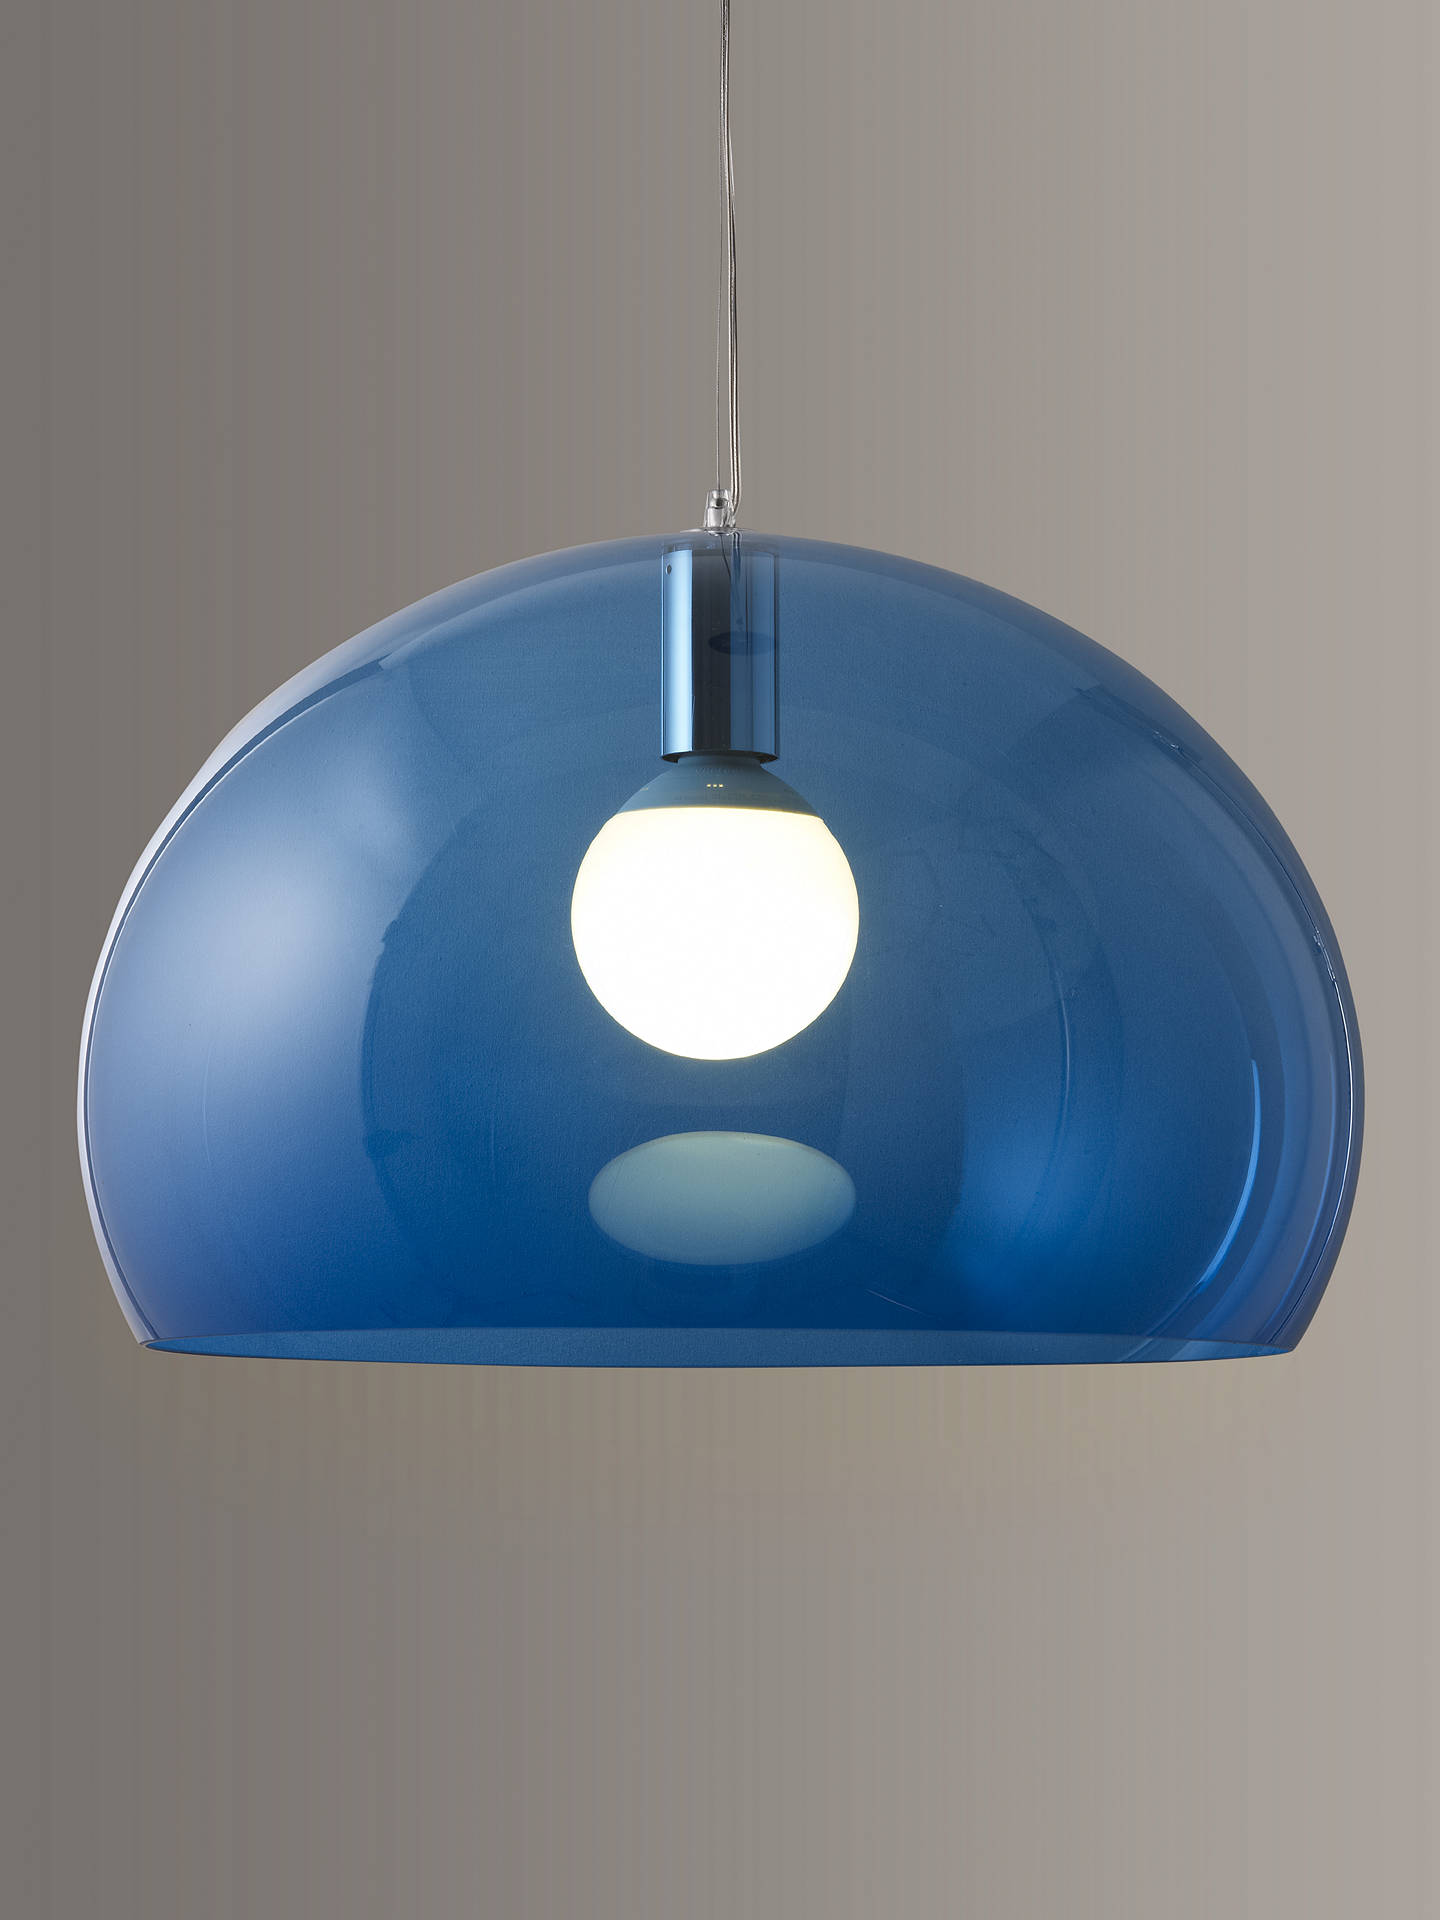 BuyKartell FLY Ceiling Light, Petrol Blue Online at johnlewis.com